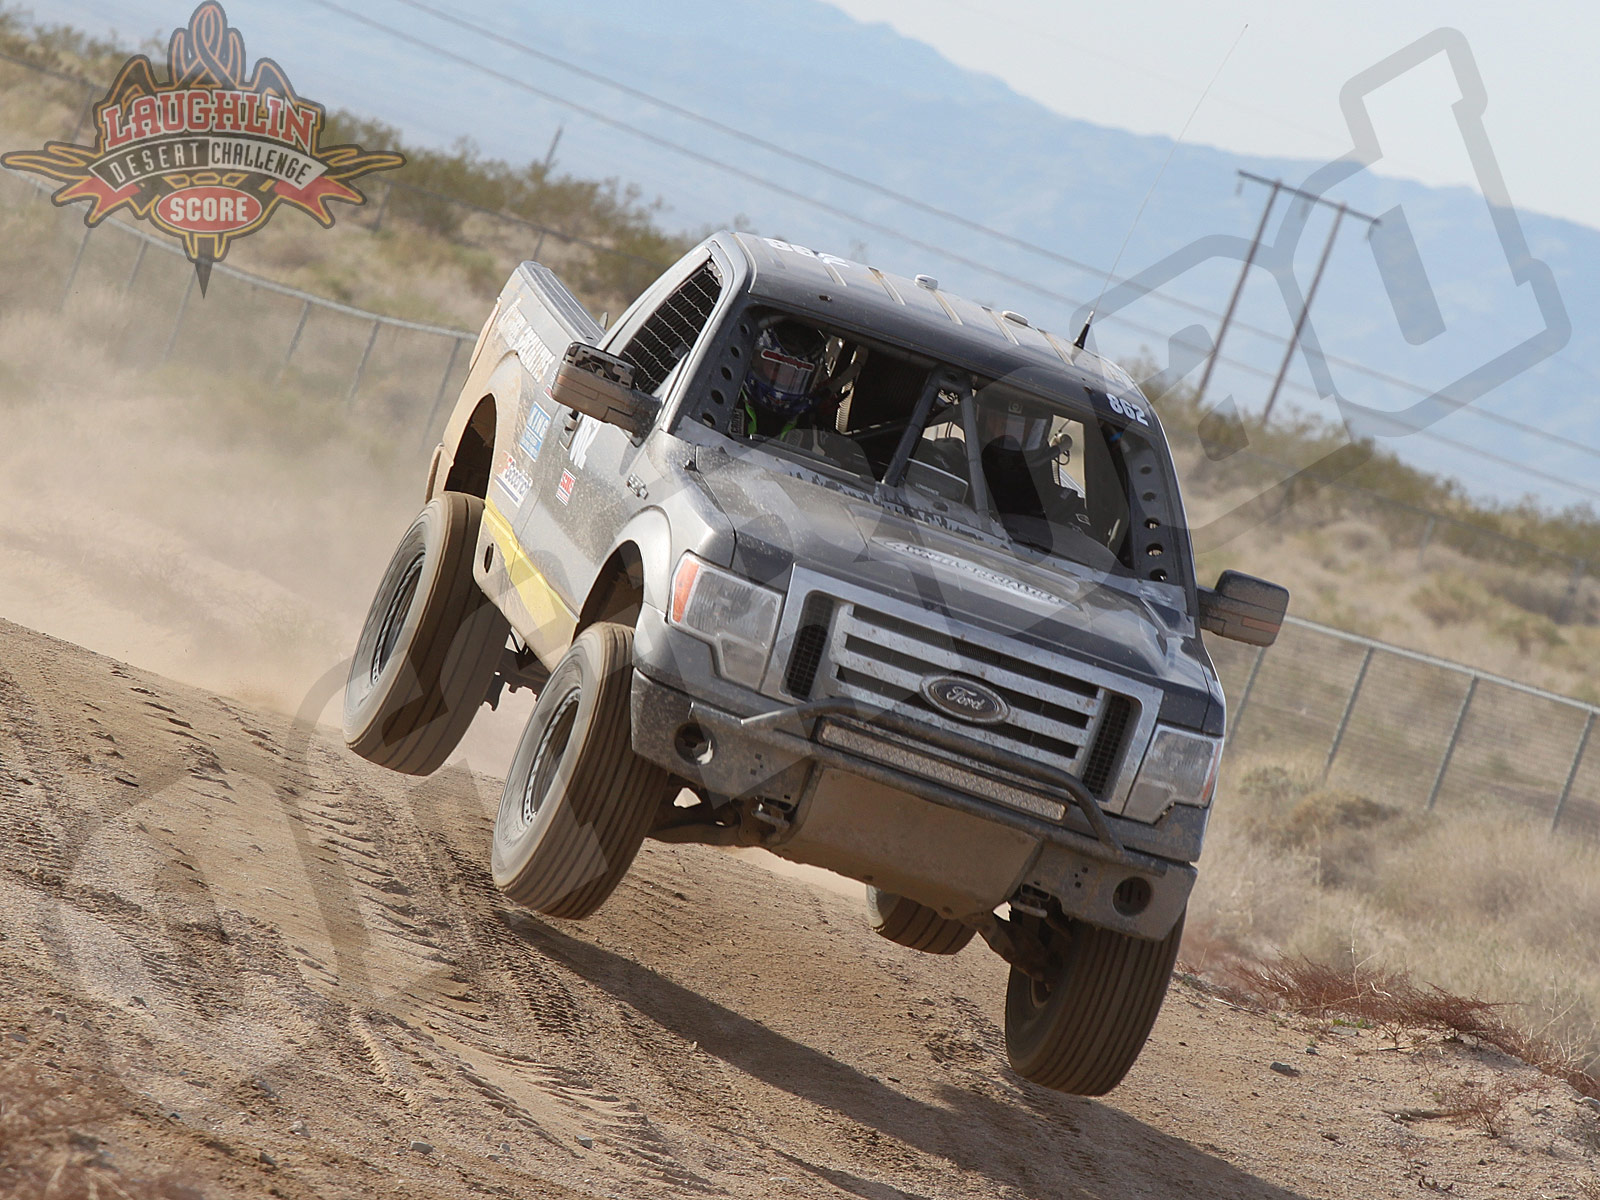 012011or 6589+2011 score laughlin desert challenge+truck classes